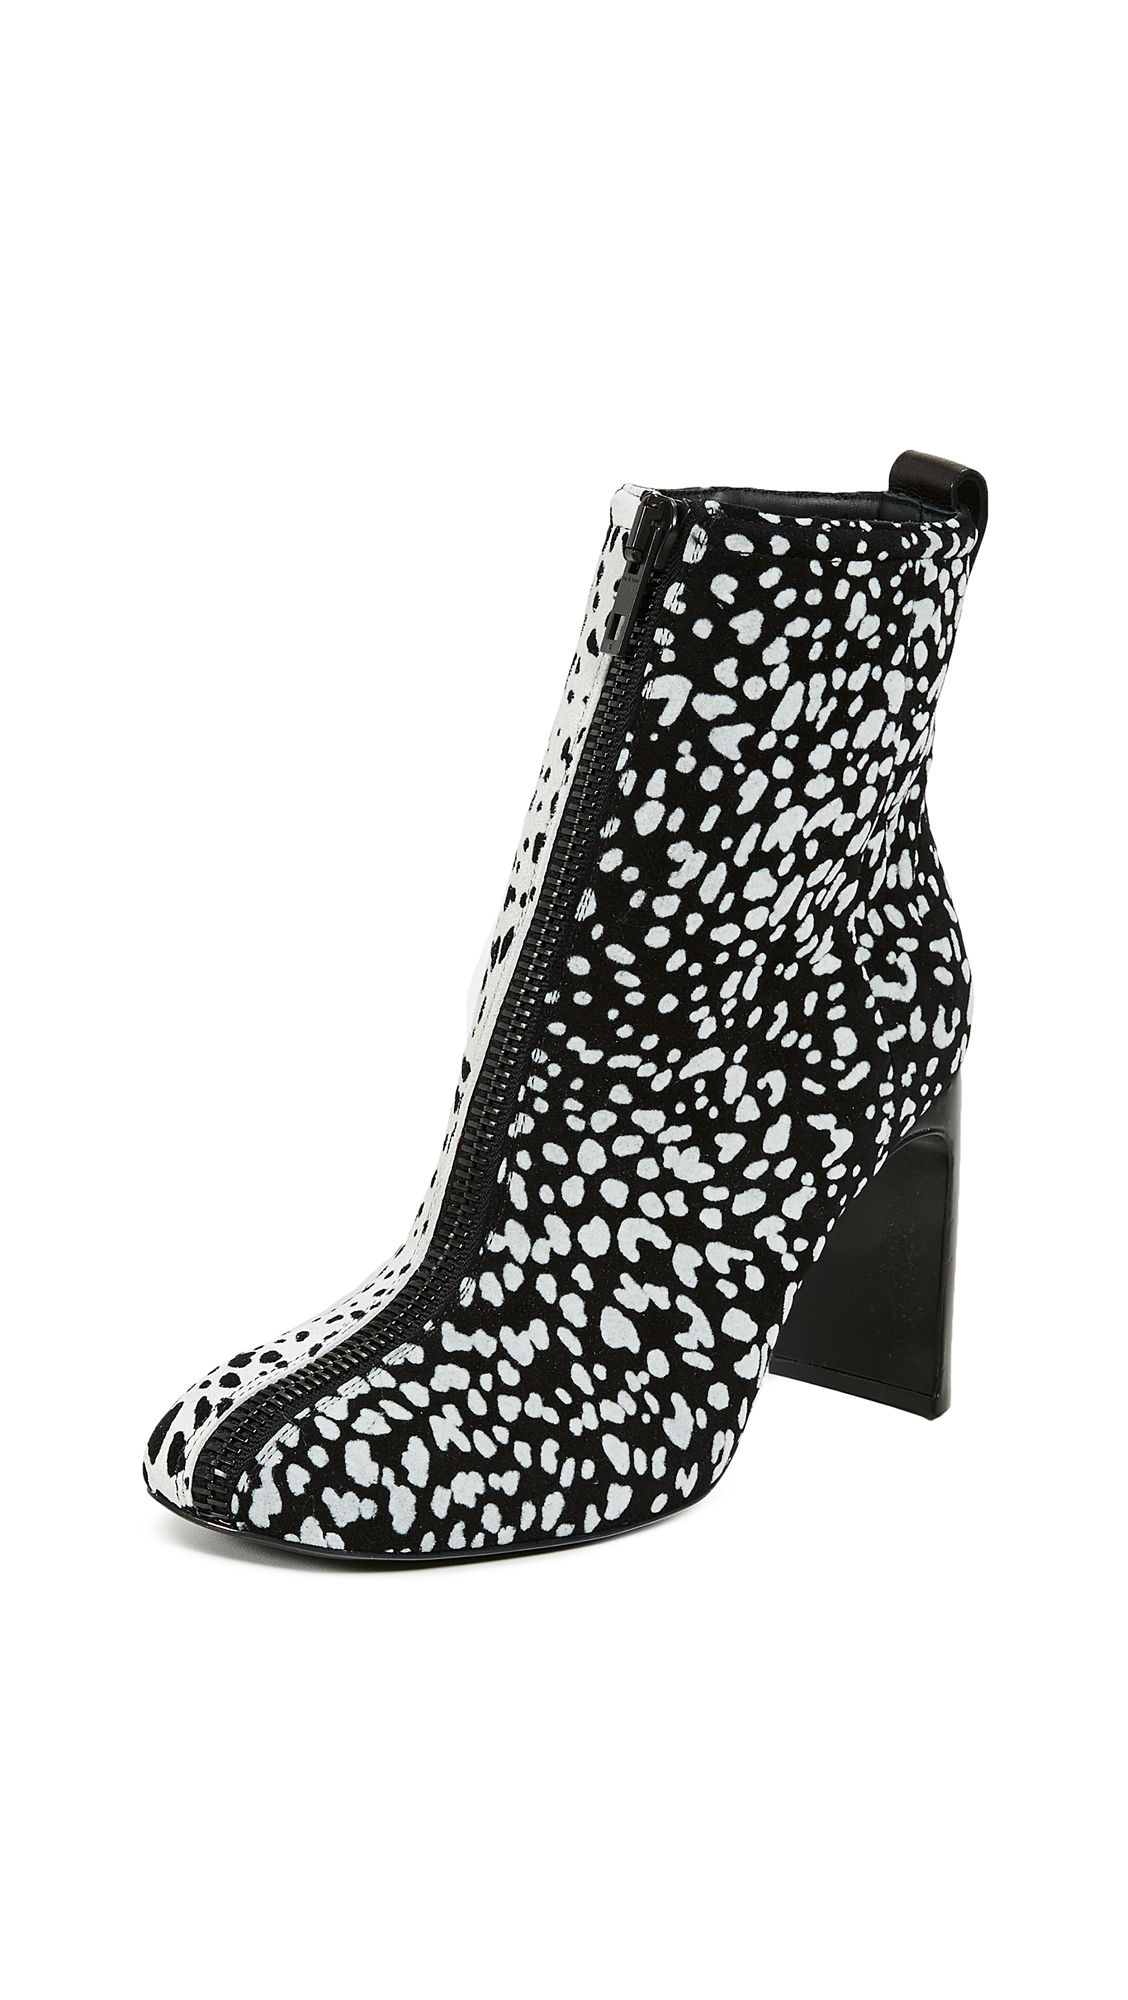 Rag & Bone Ellis Zip Booties - Black White Cheetah